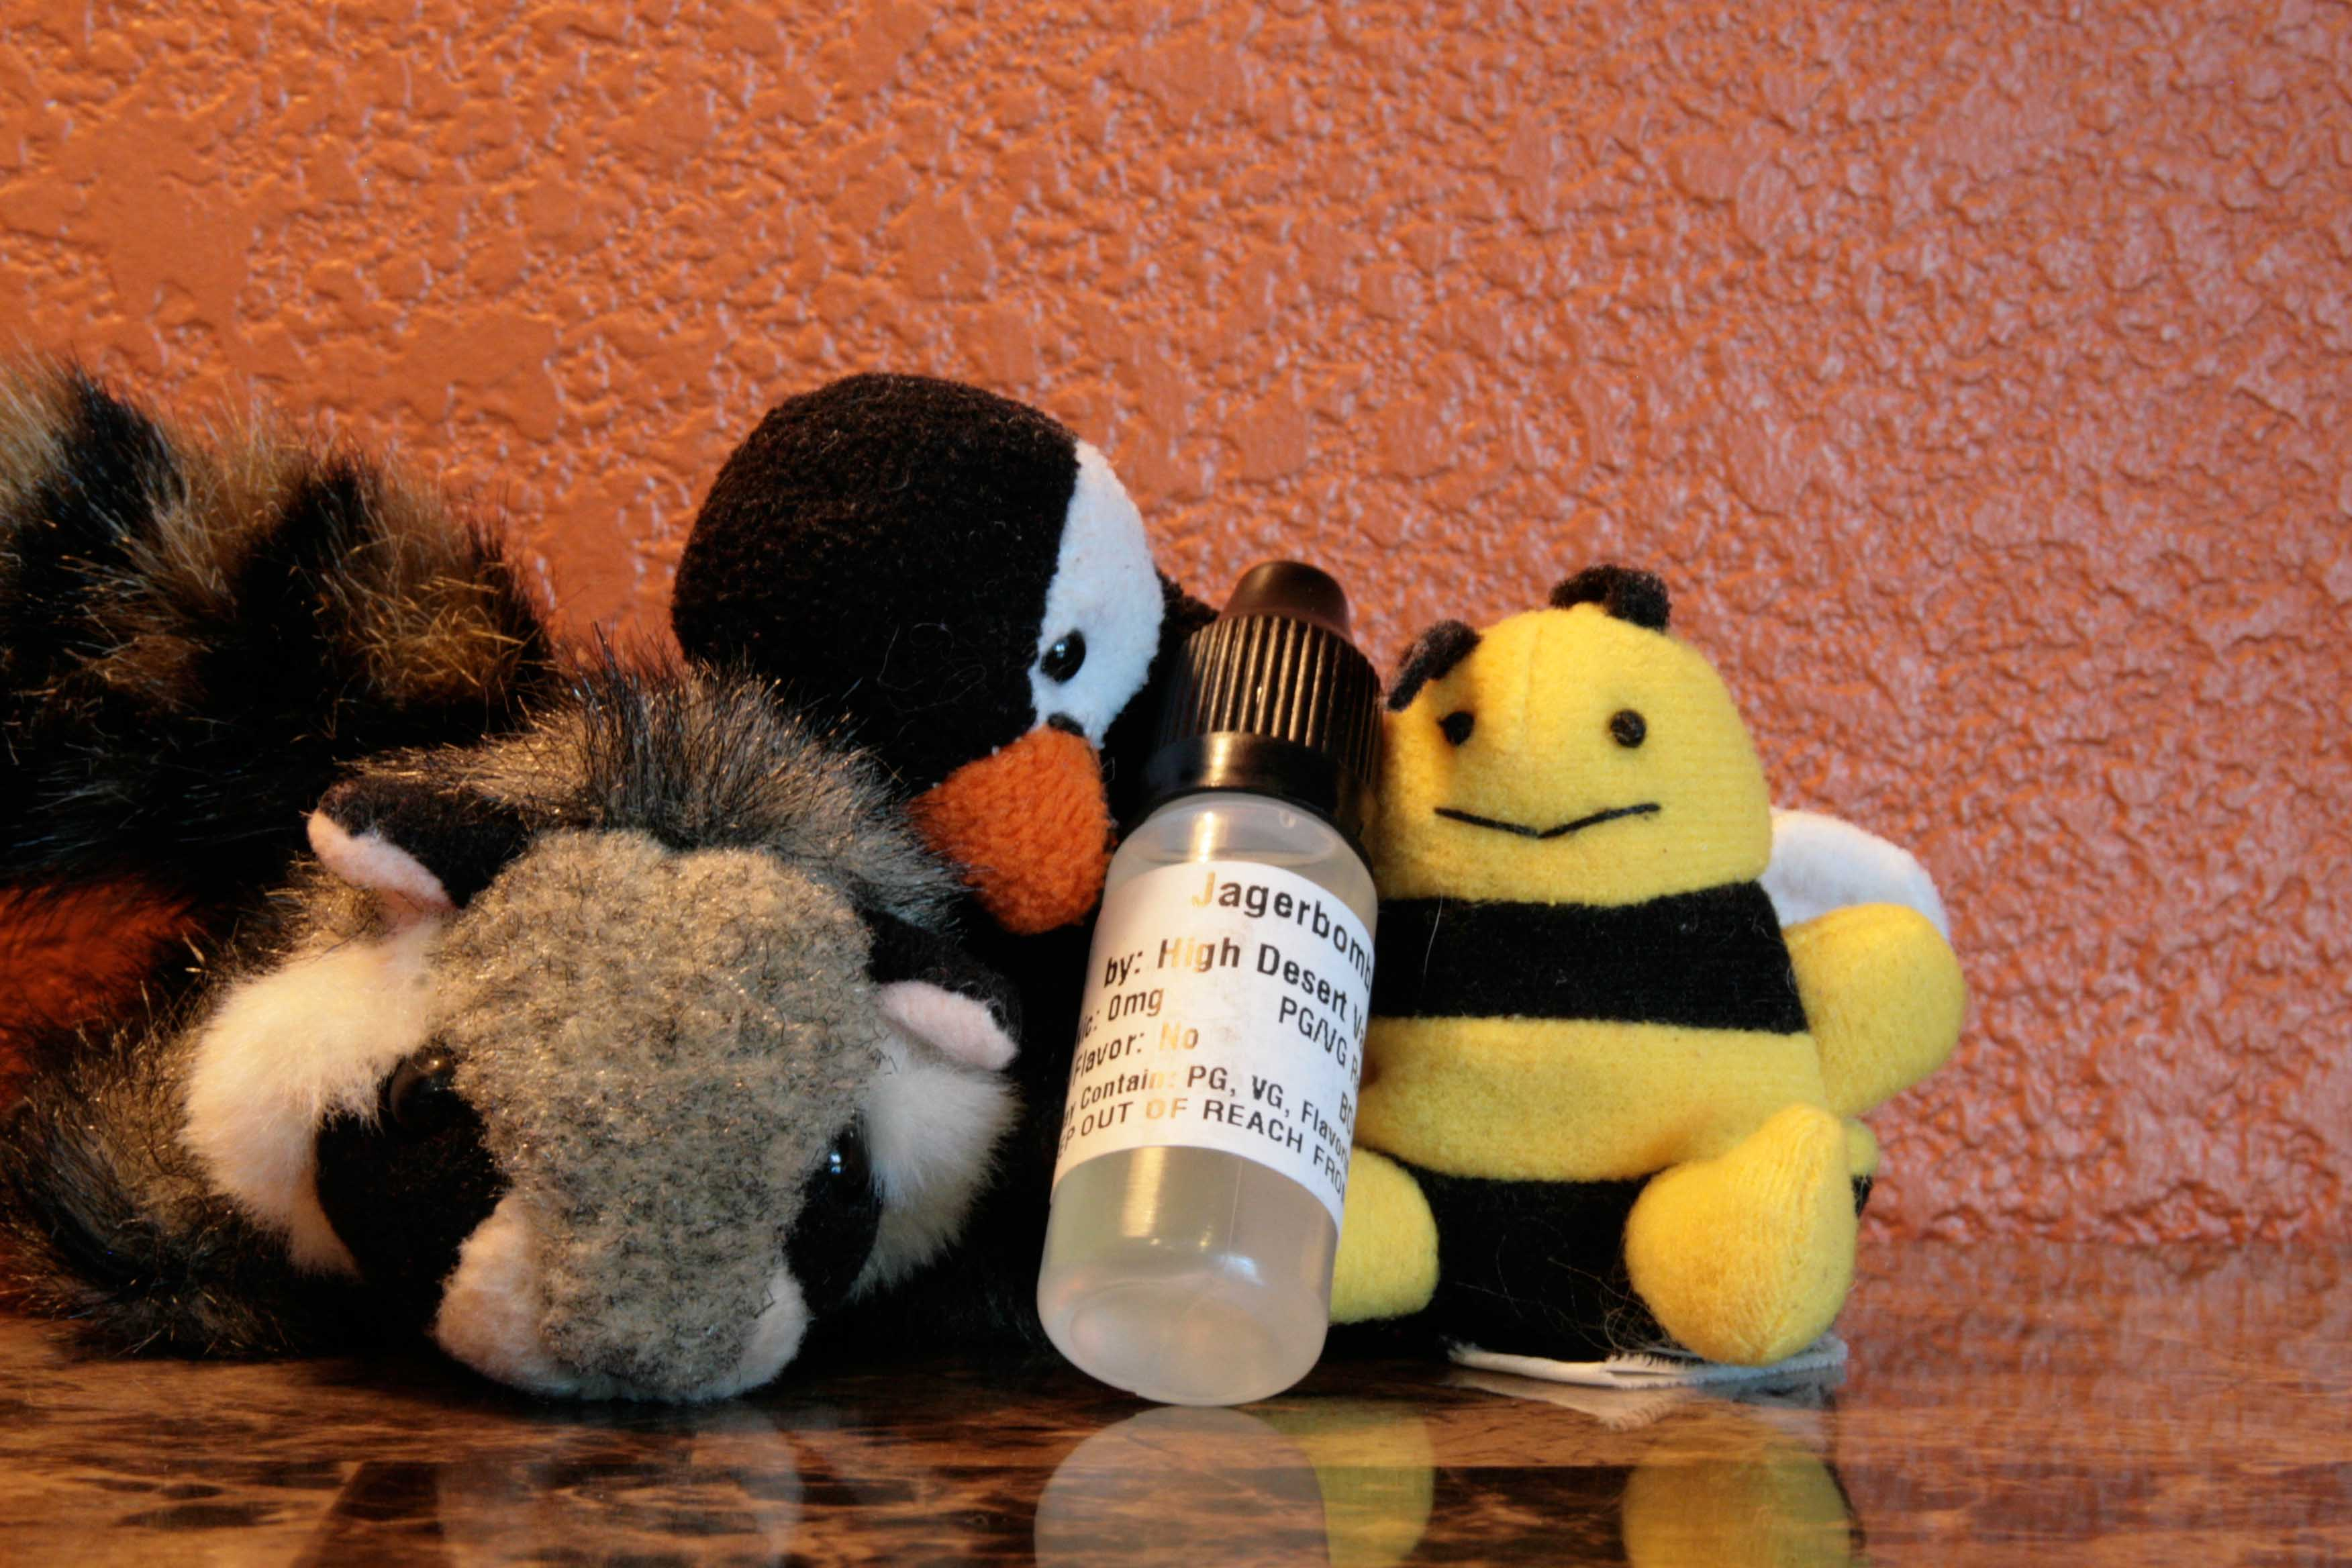 we try the worst vape flavors known to man the pizzle